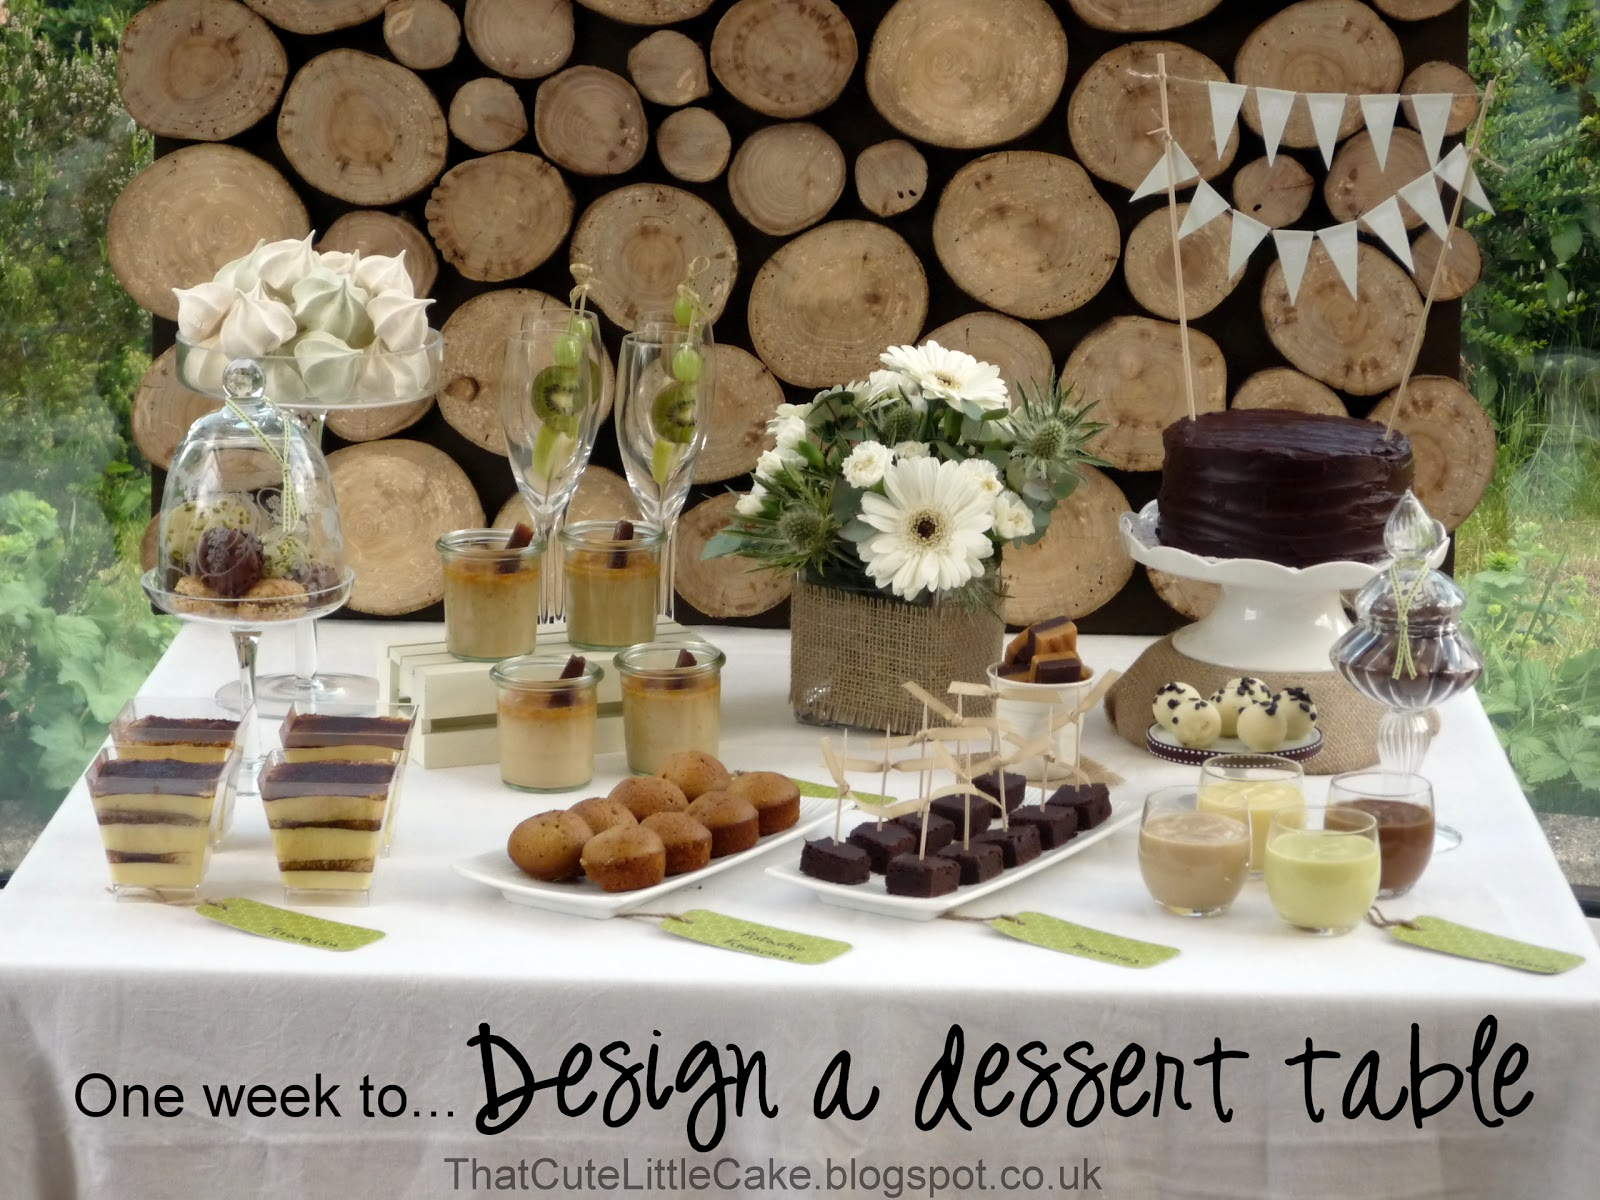 That Cute Little Cake e week to Design a dessert